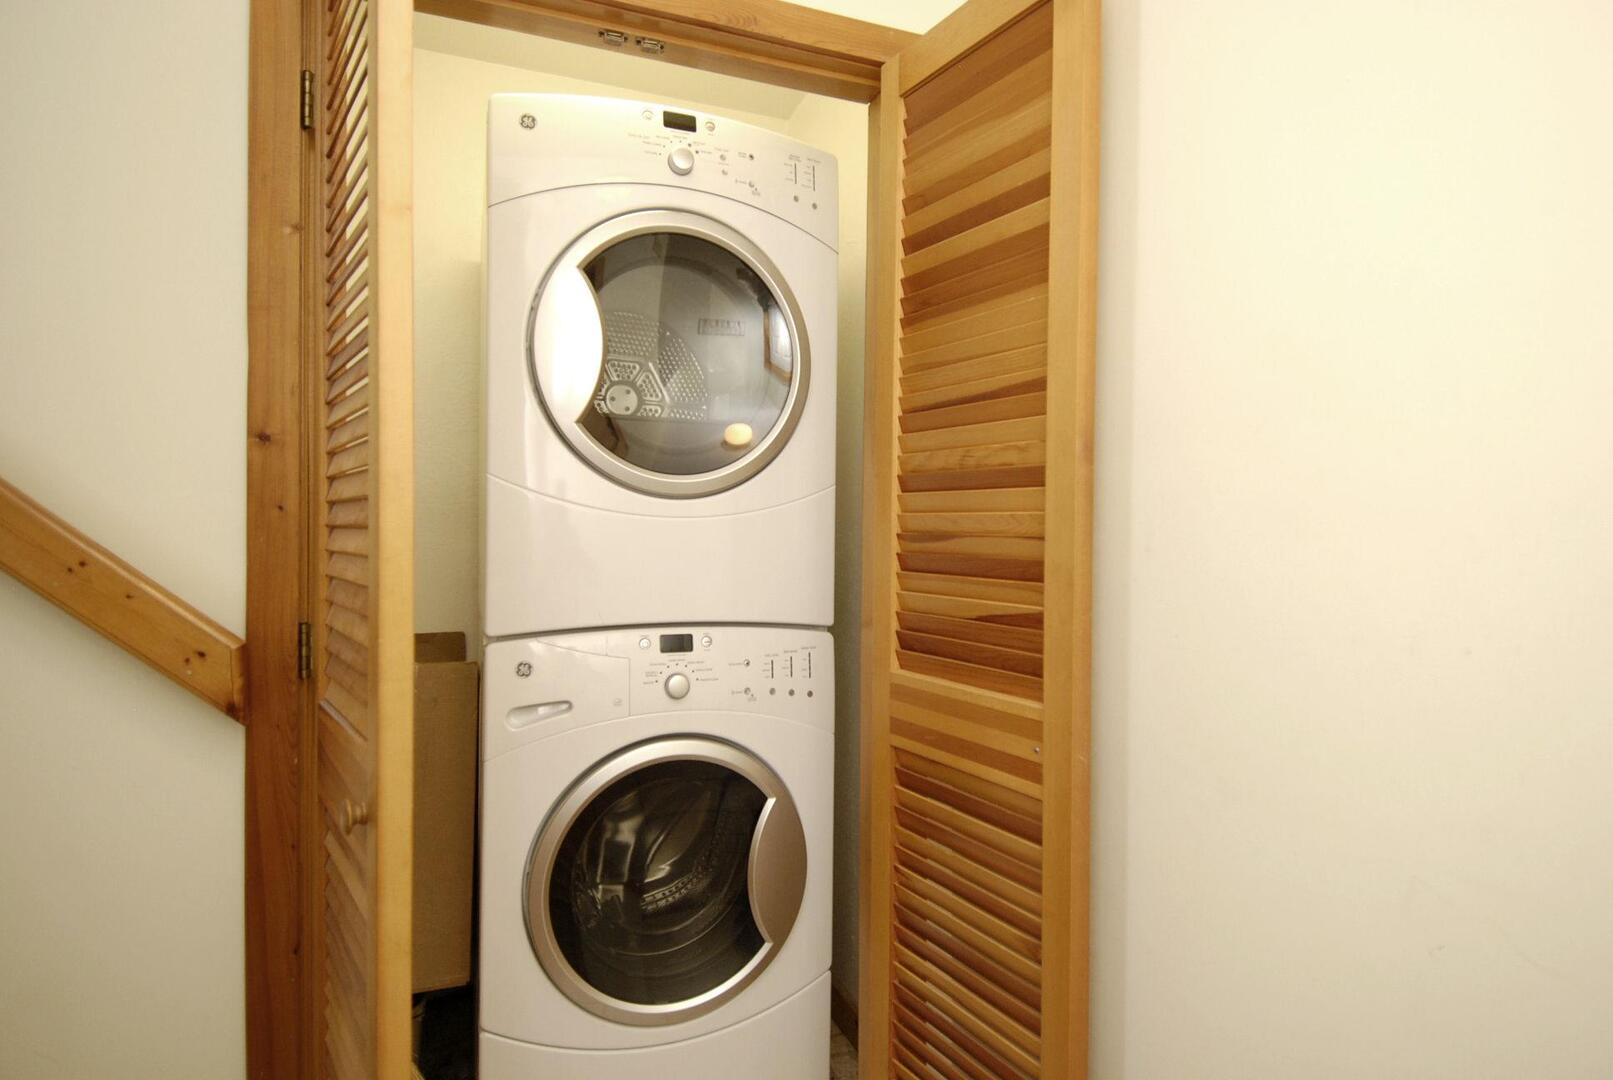 Middle Level,Washer Dryer,Washer and dryer.